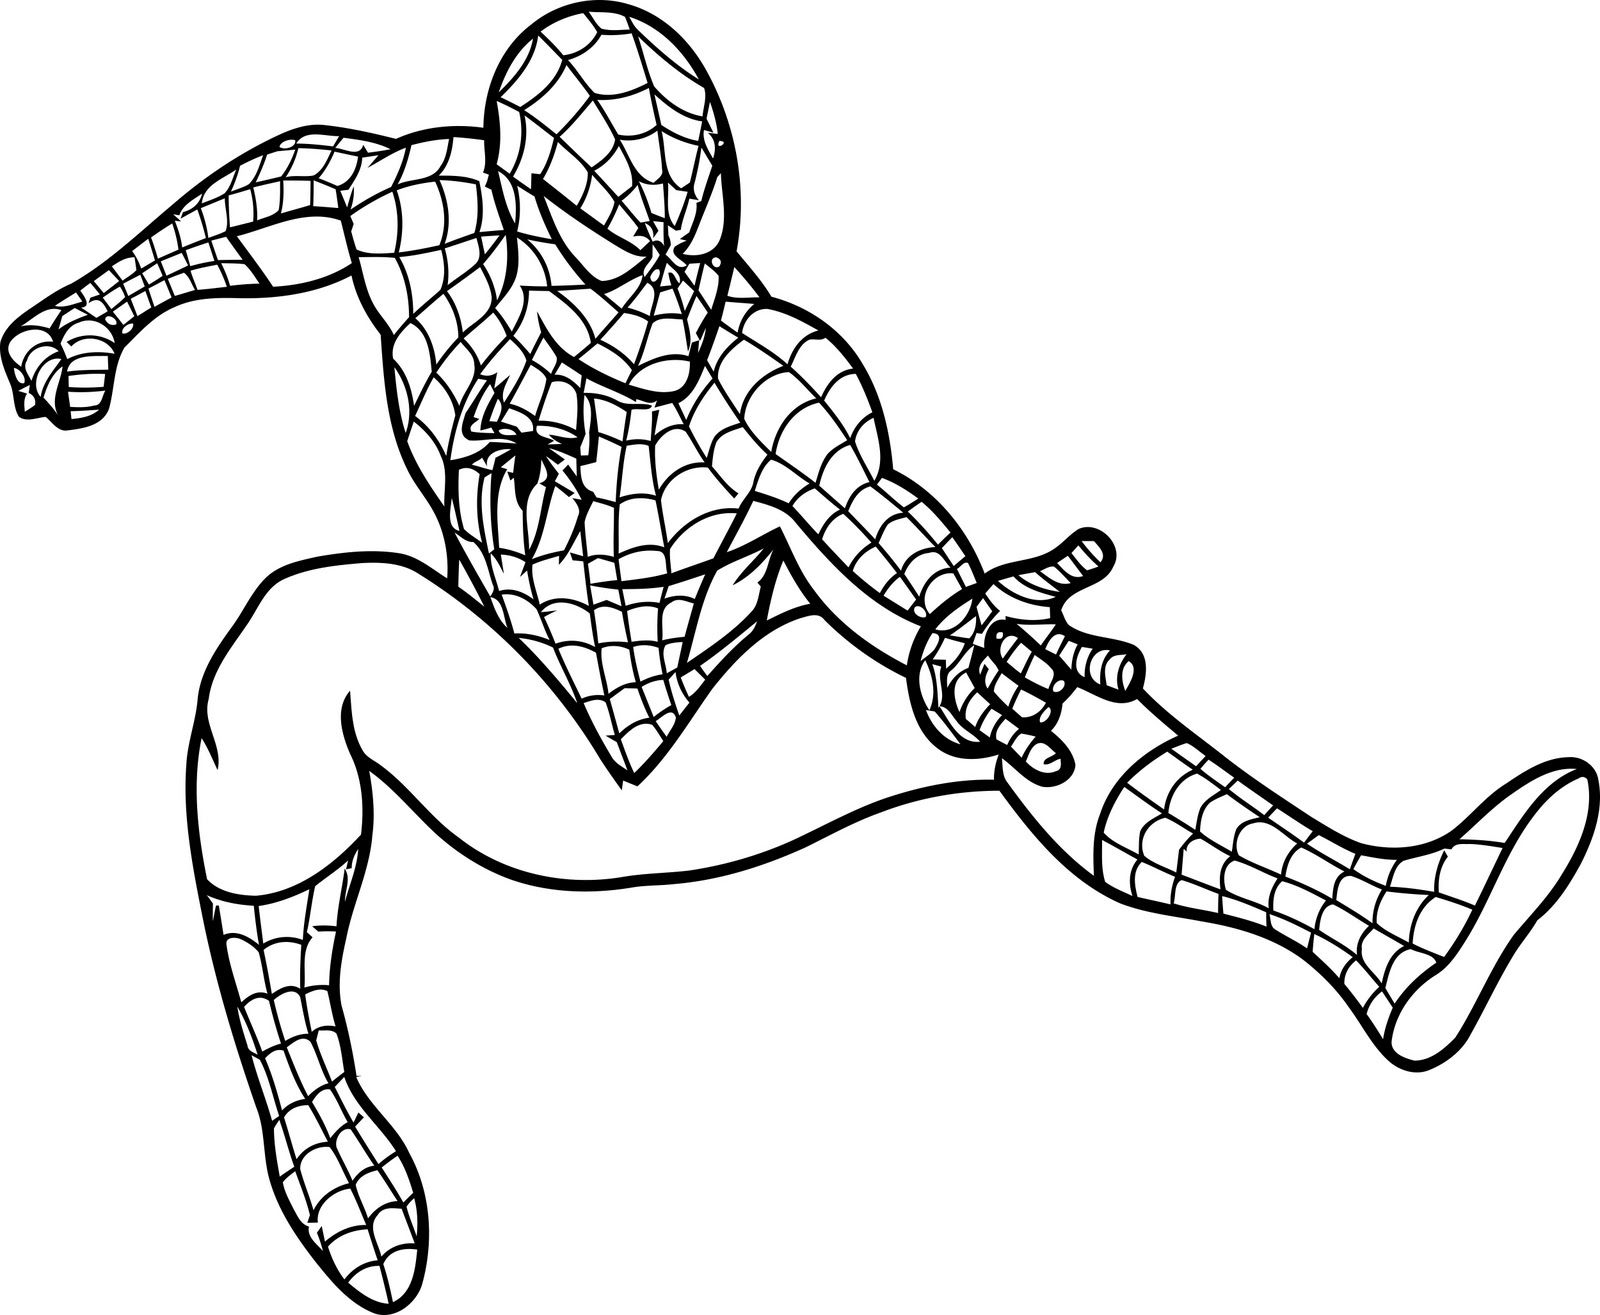 spiderman coloring pages free spiderman coloring pages for kids printable - Coloring Pictures For Kids